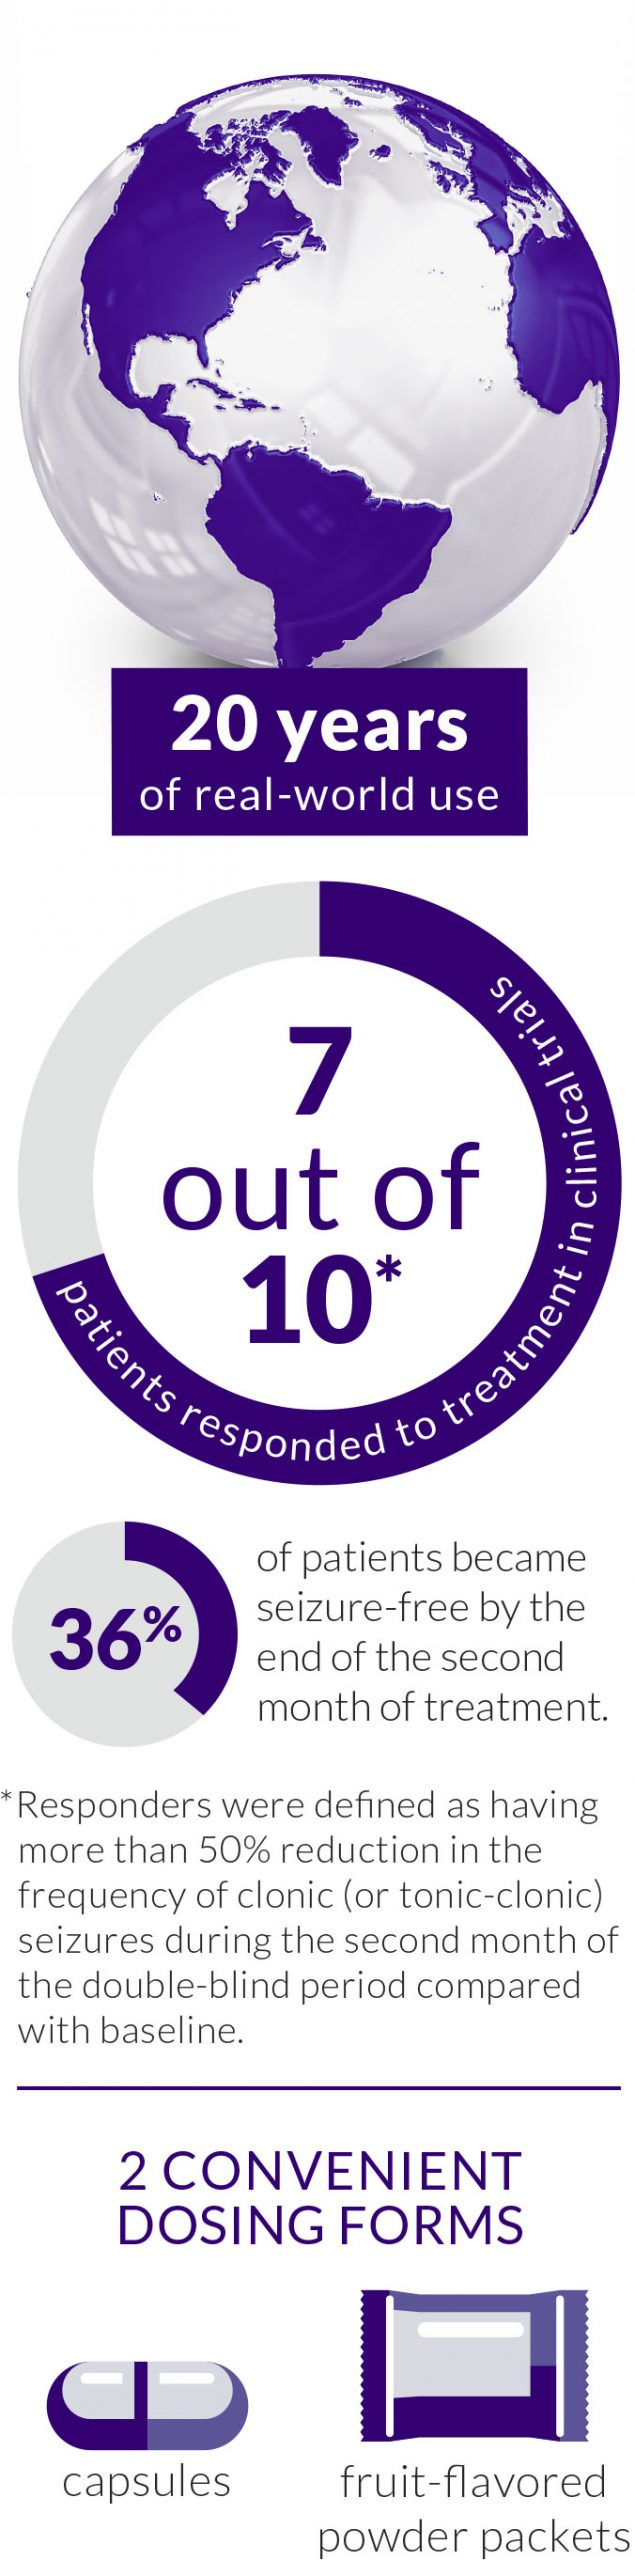 DIACOMIT is a trusted Dravet syndrome treatment that comes in two convenient dosing forms